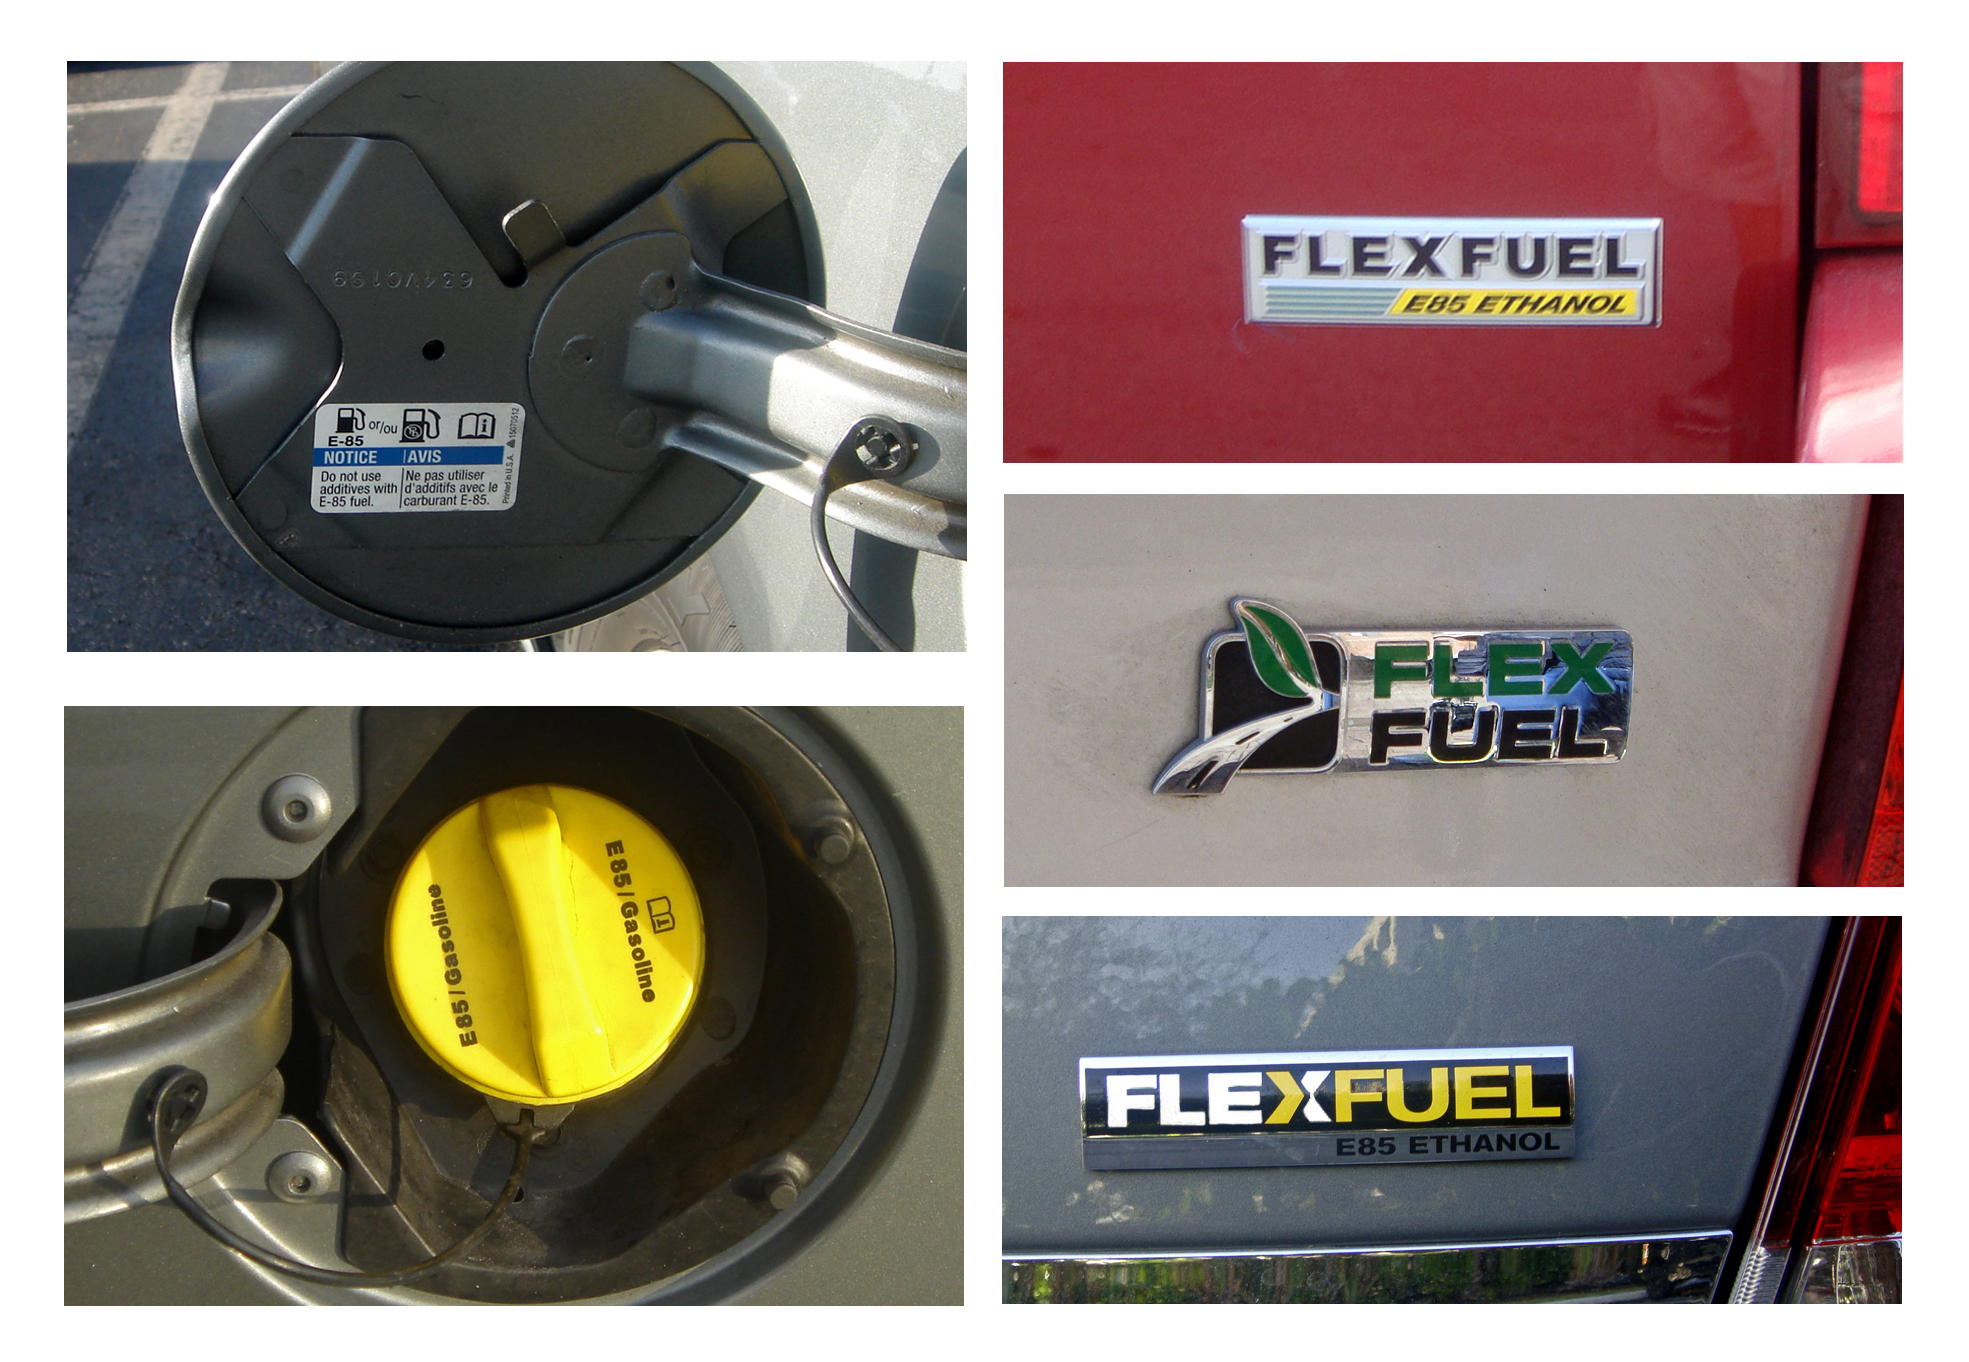 Berkasthree us e85 flex fuel badges ford gm chrysler copy jpg